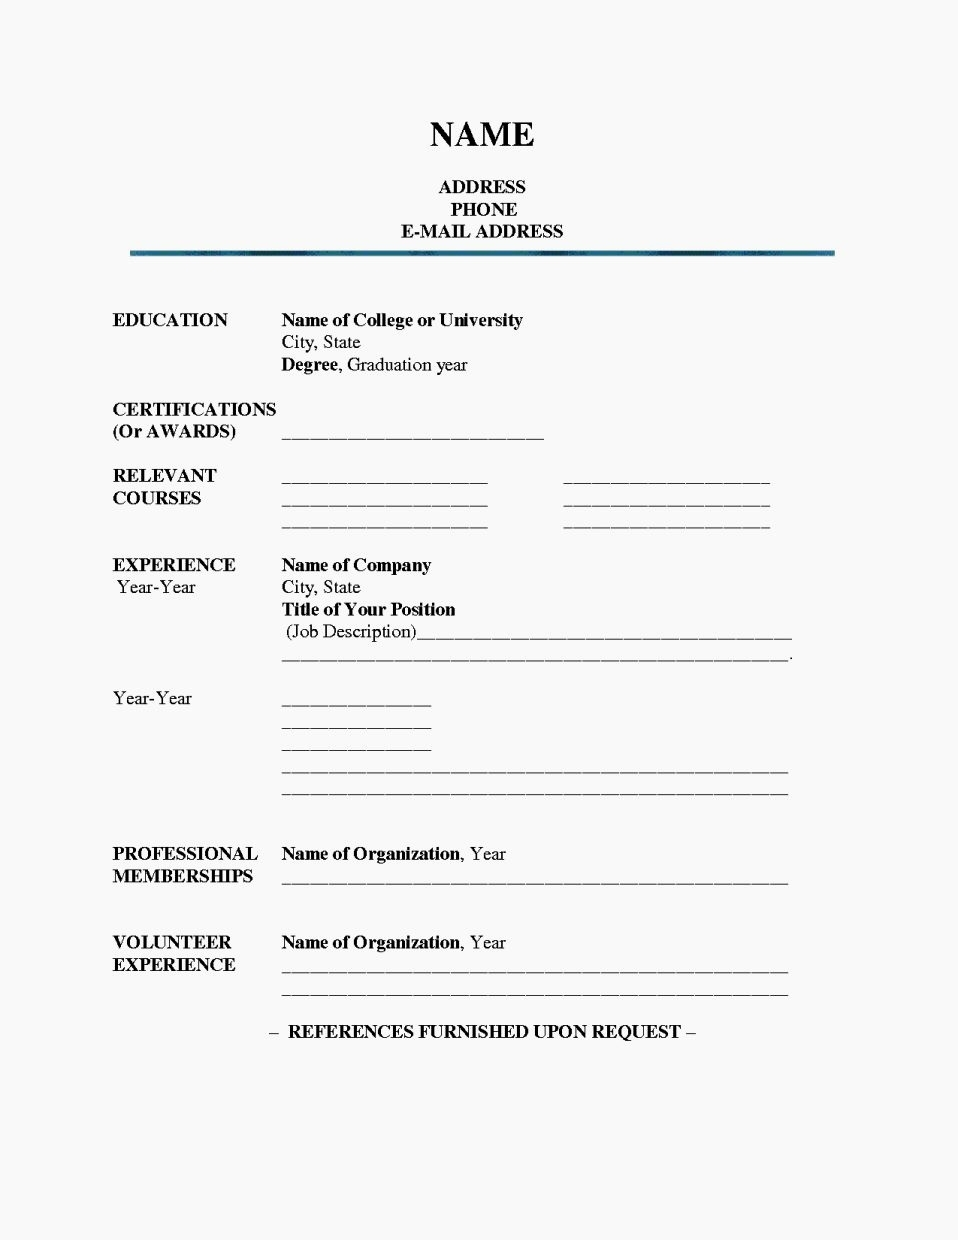 Fill In The Blank Resume Pdf Or Fill In Blank Printable Resume regarding Fill In The Blank Template